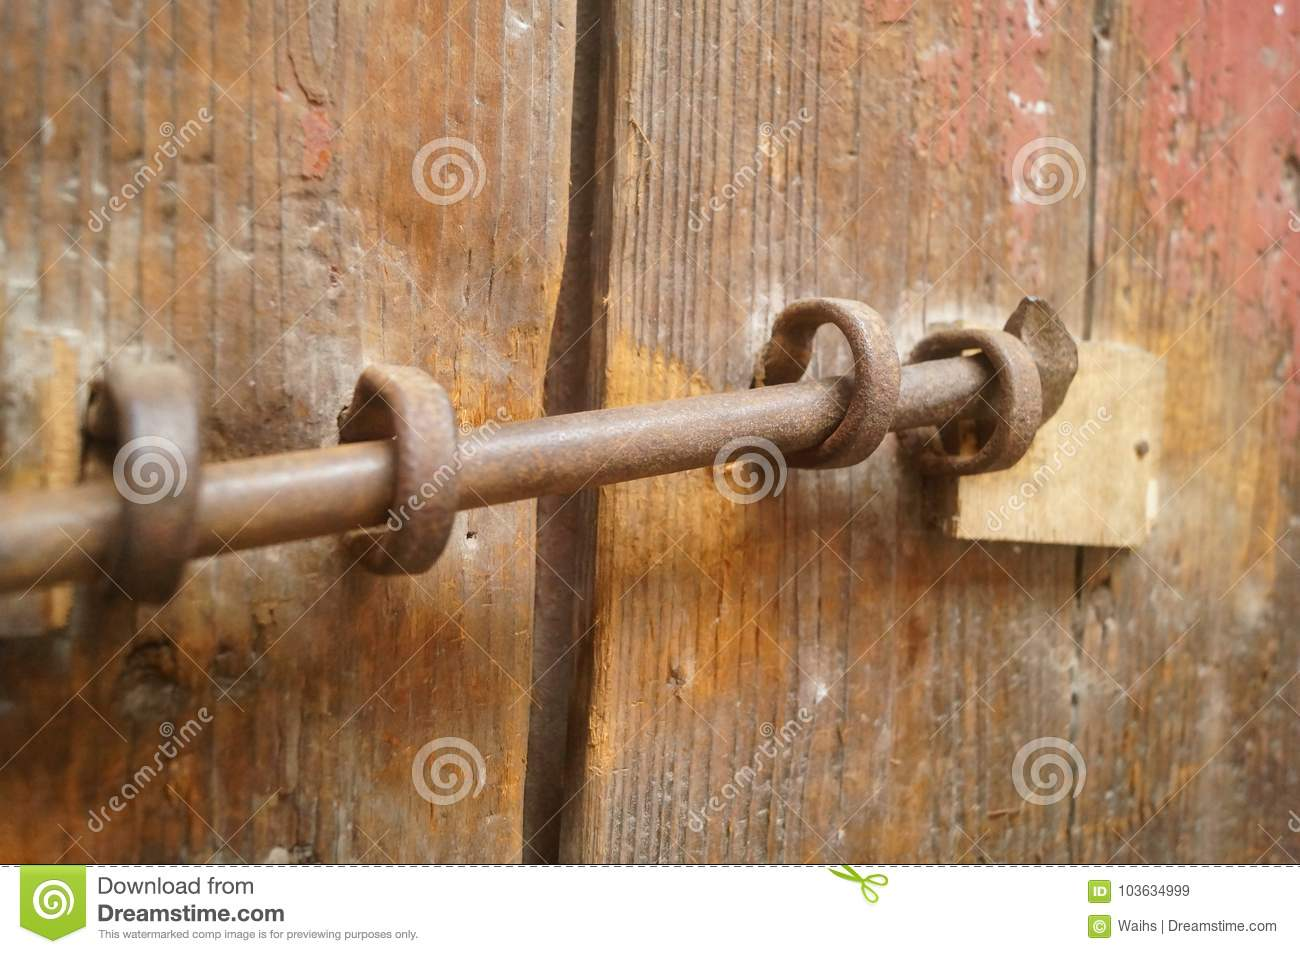 wooden doors and locks in an old house stock image image of